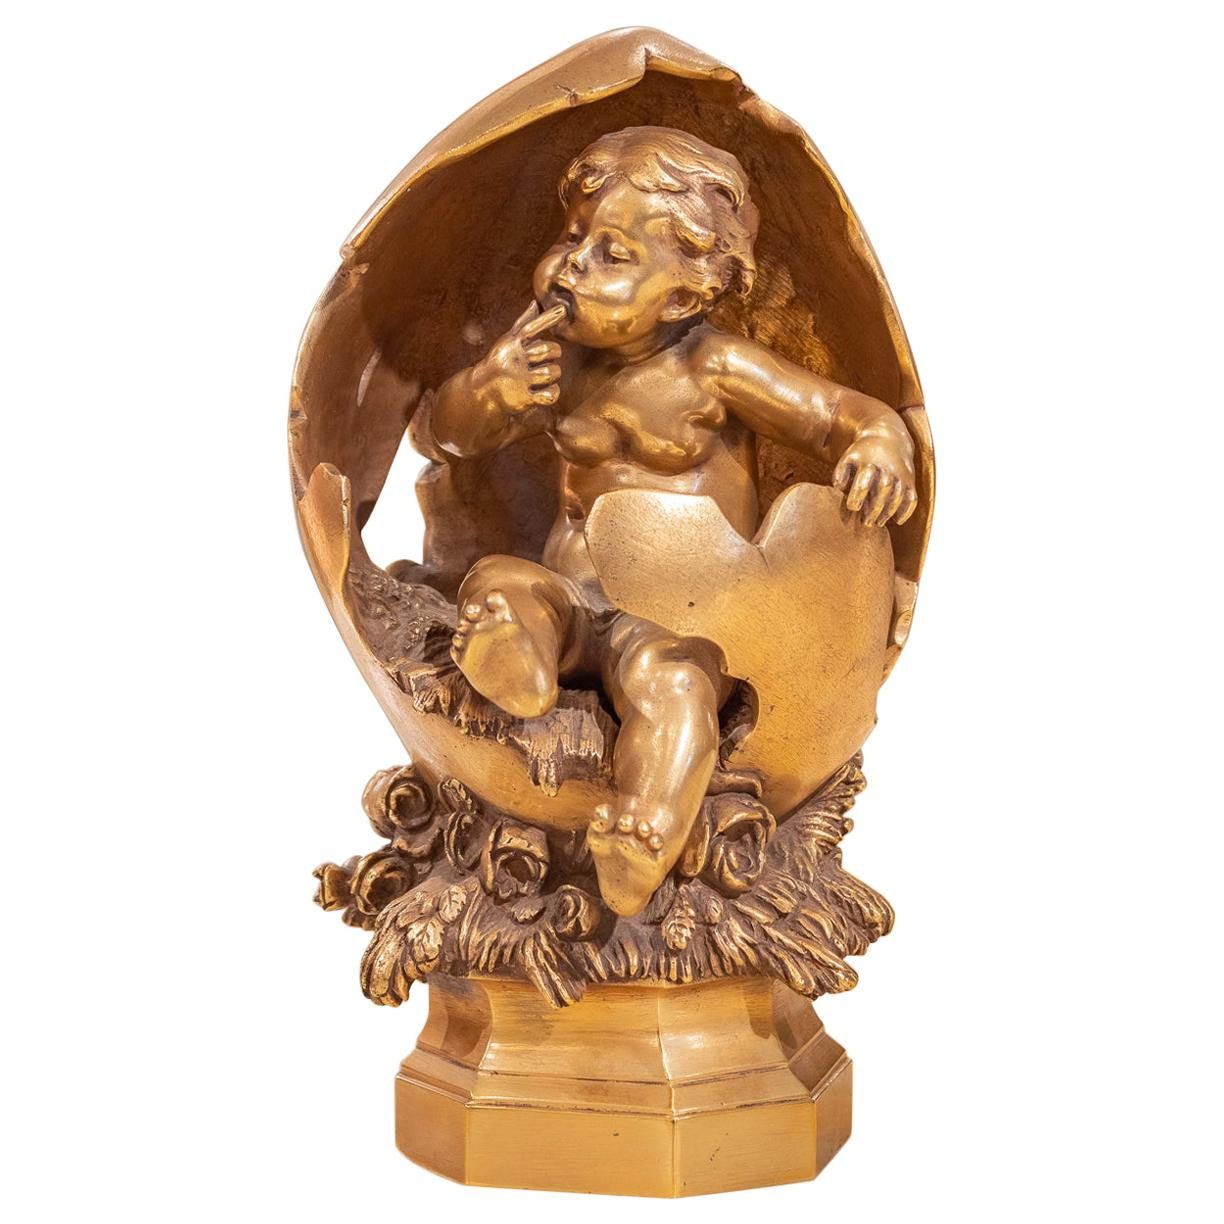 Fine and Beautiful 19th Century French Gilt Bronze Cherub by August Moreau